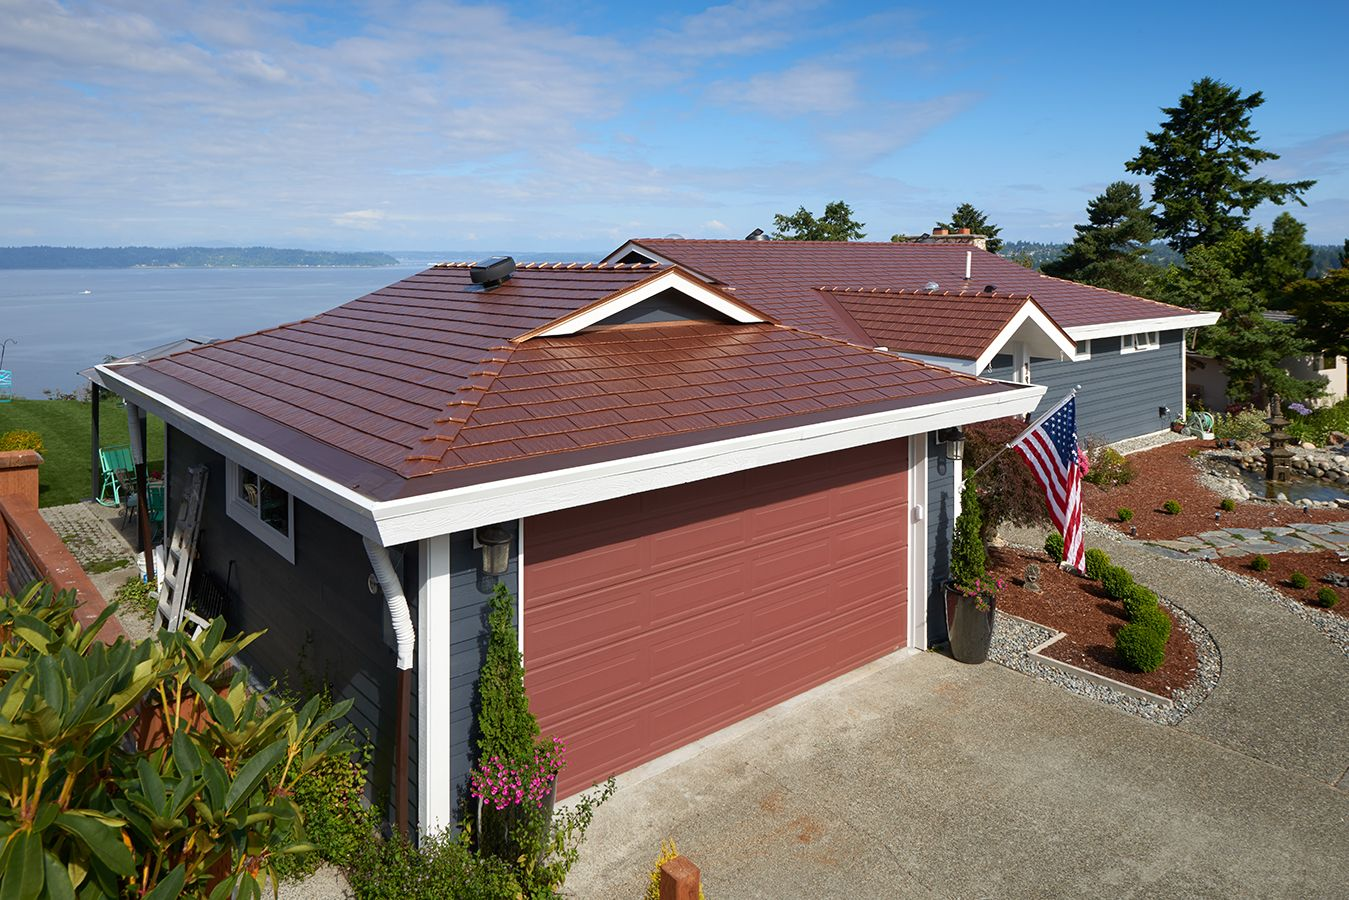 interlock-cedar-shingle-metal-roof-aged-copper-burien-wa-1